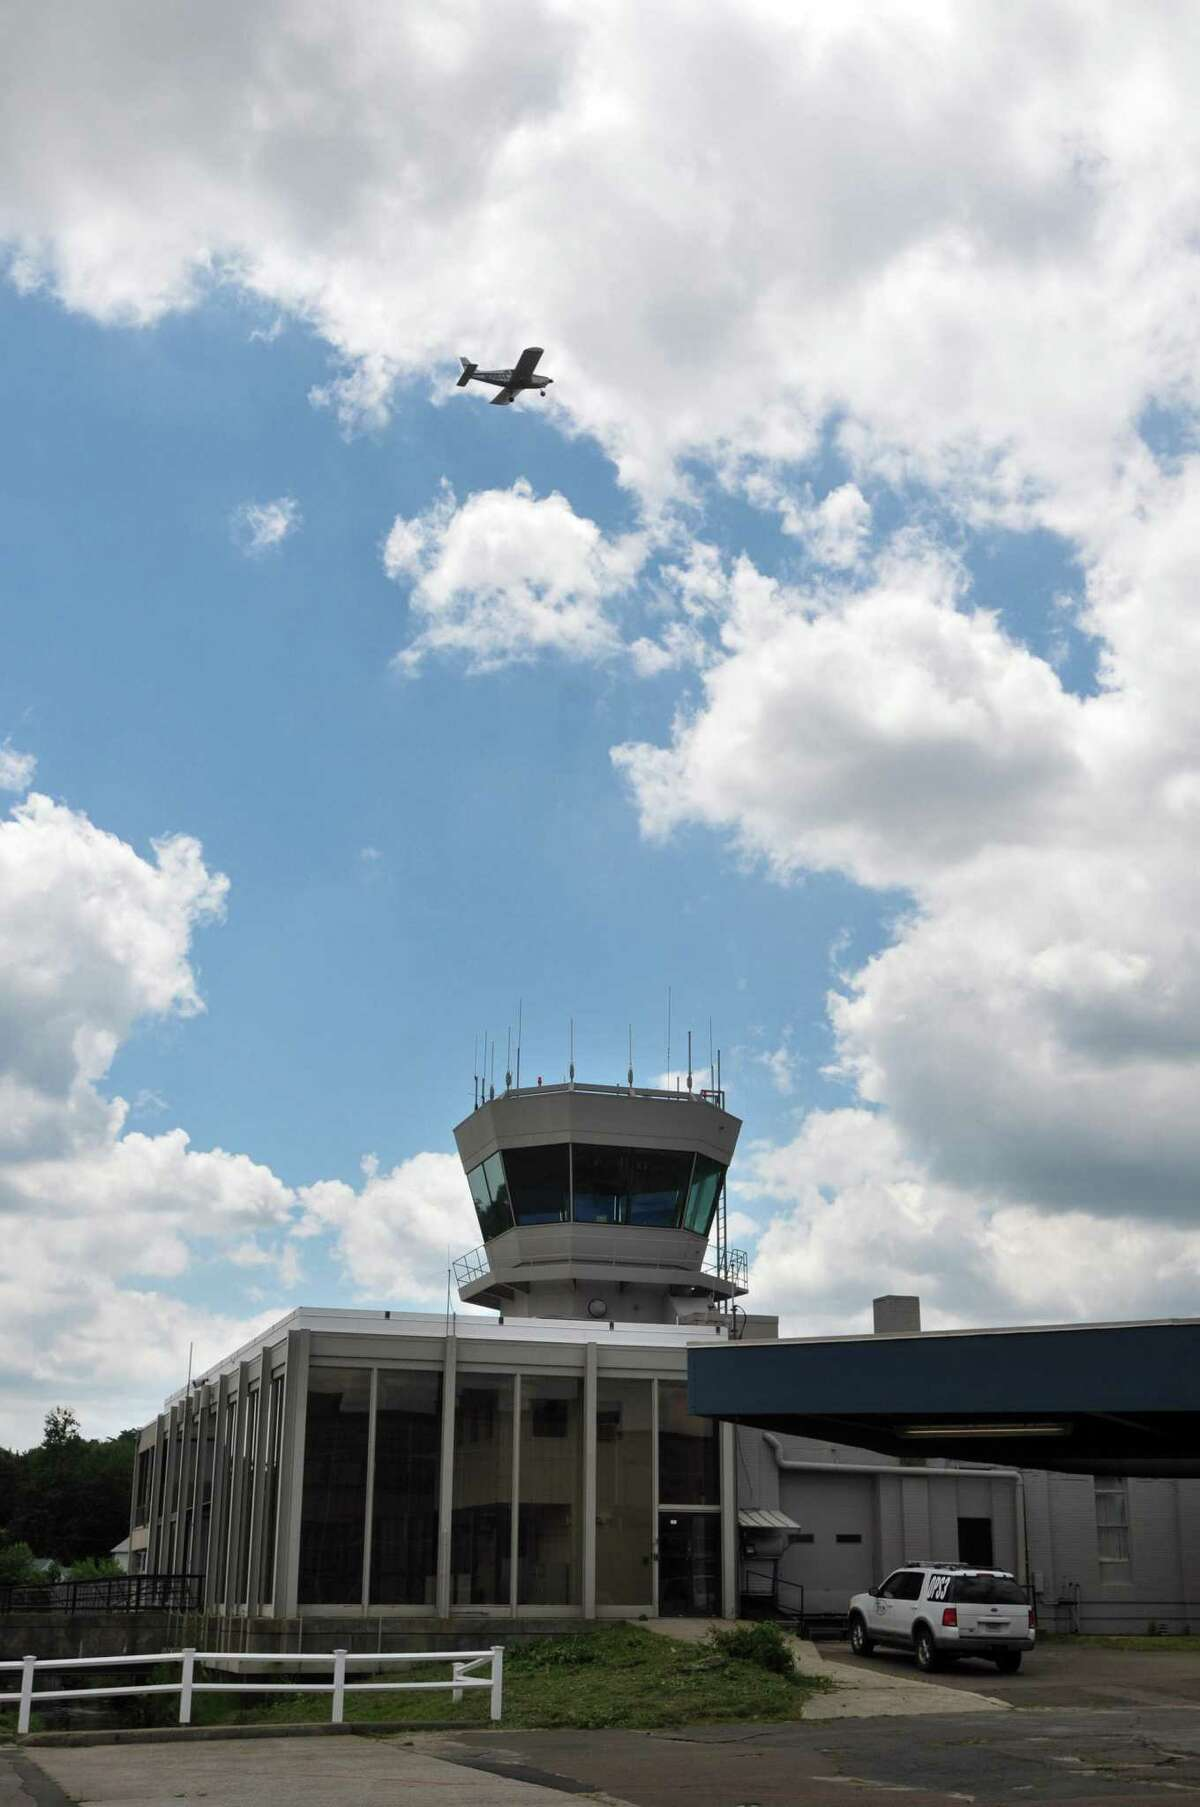 A small plane takes off from Tweed New Haven Airport.